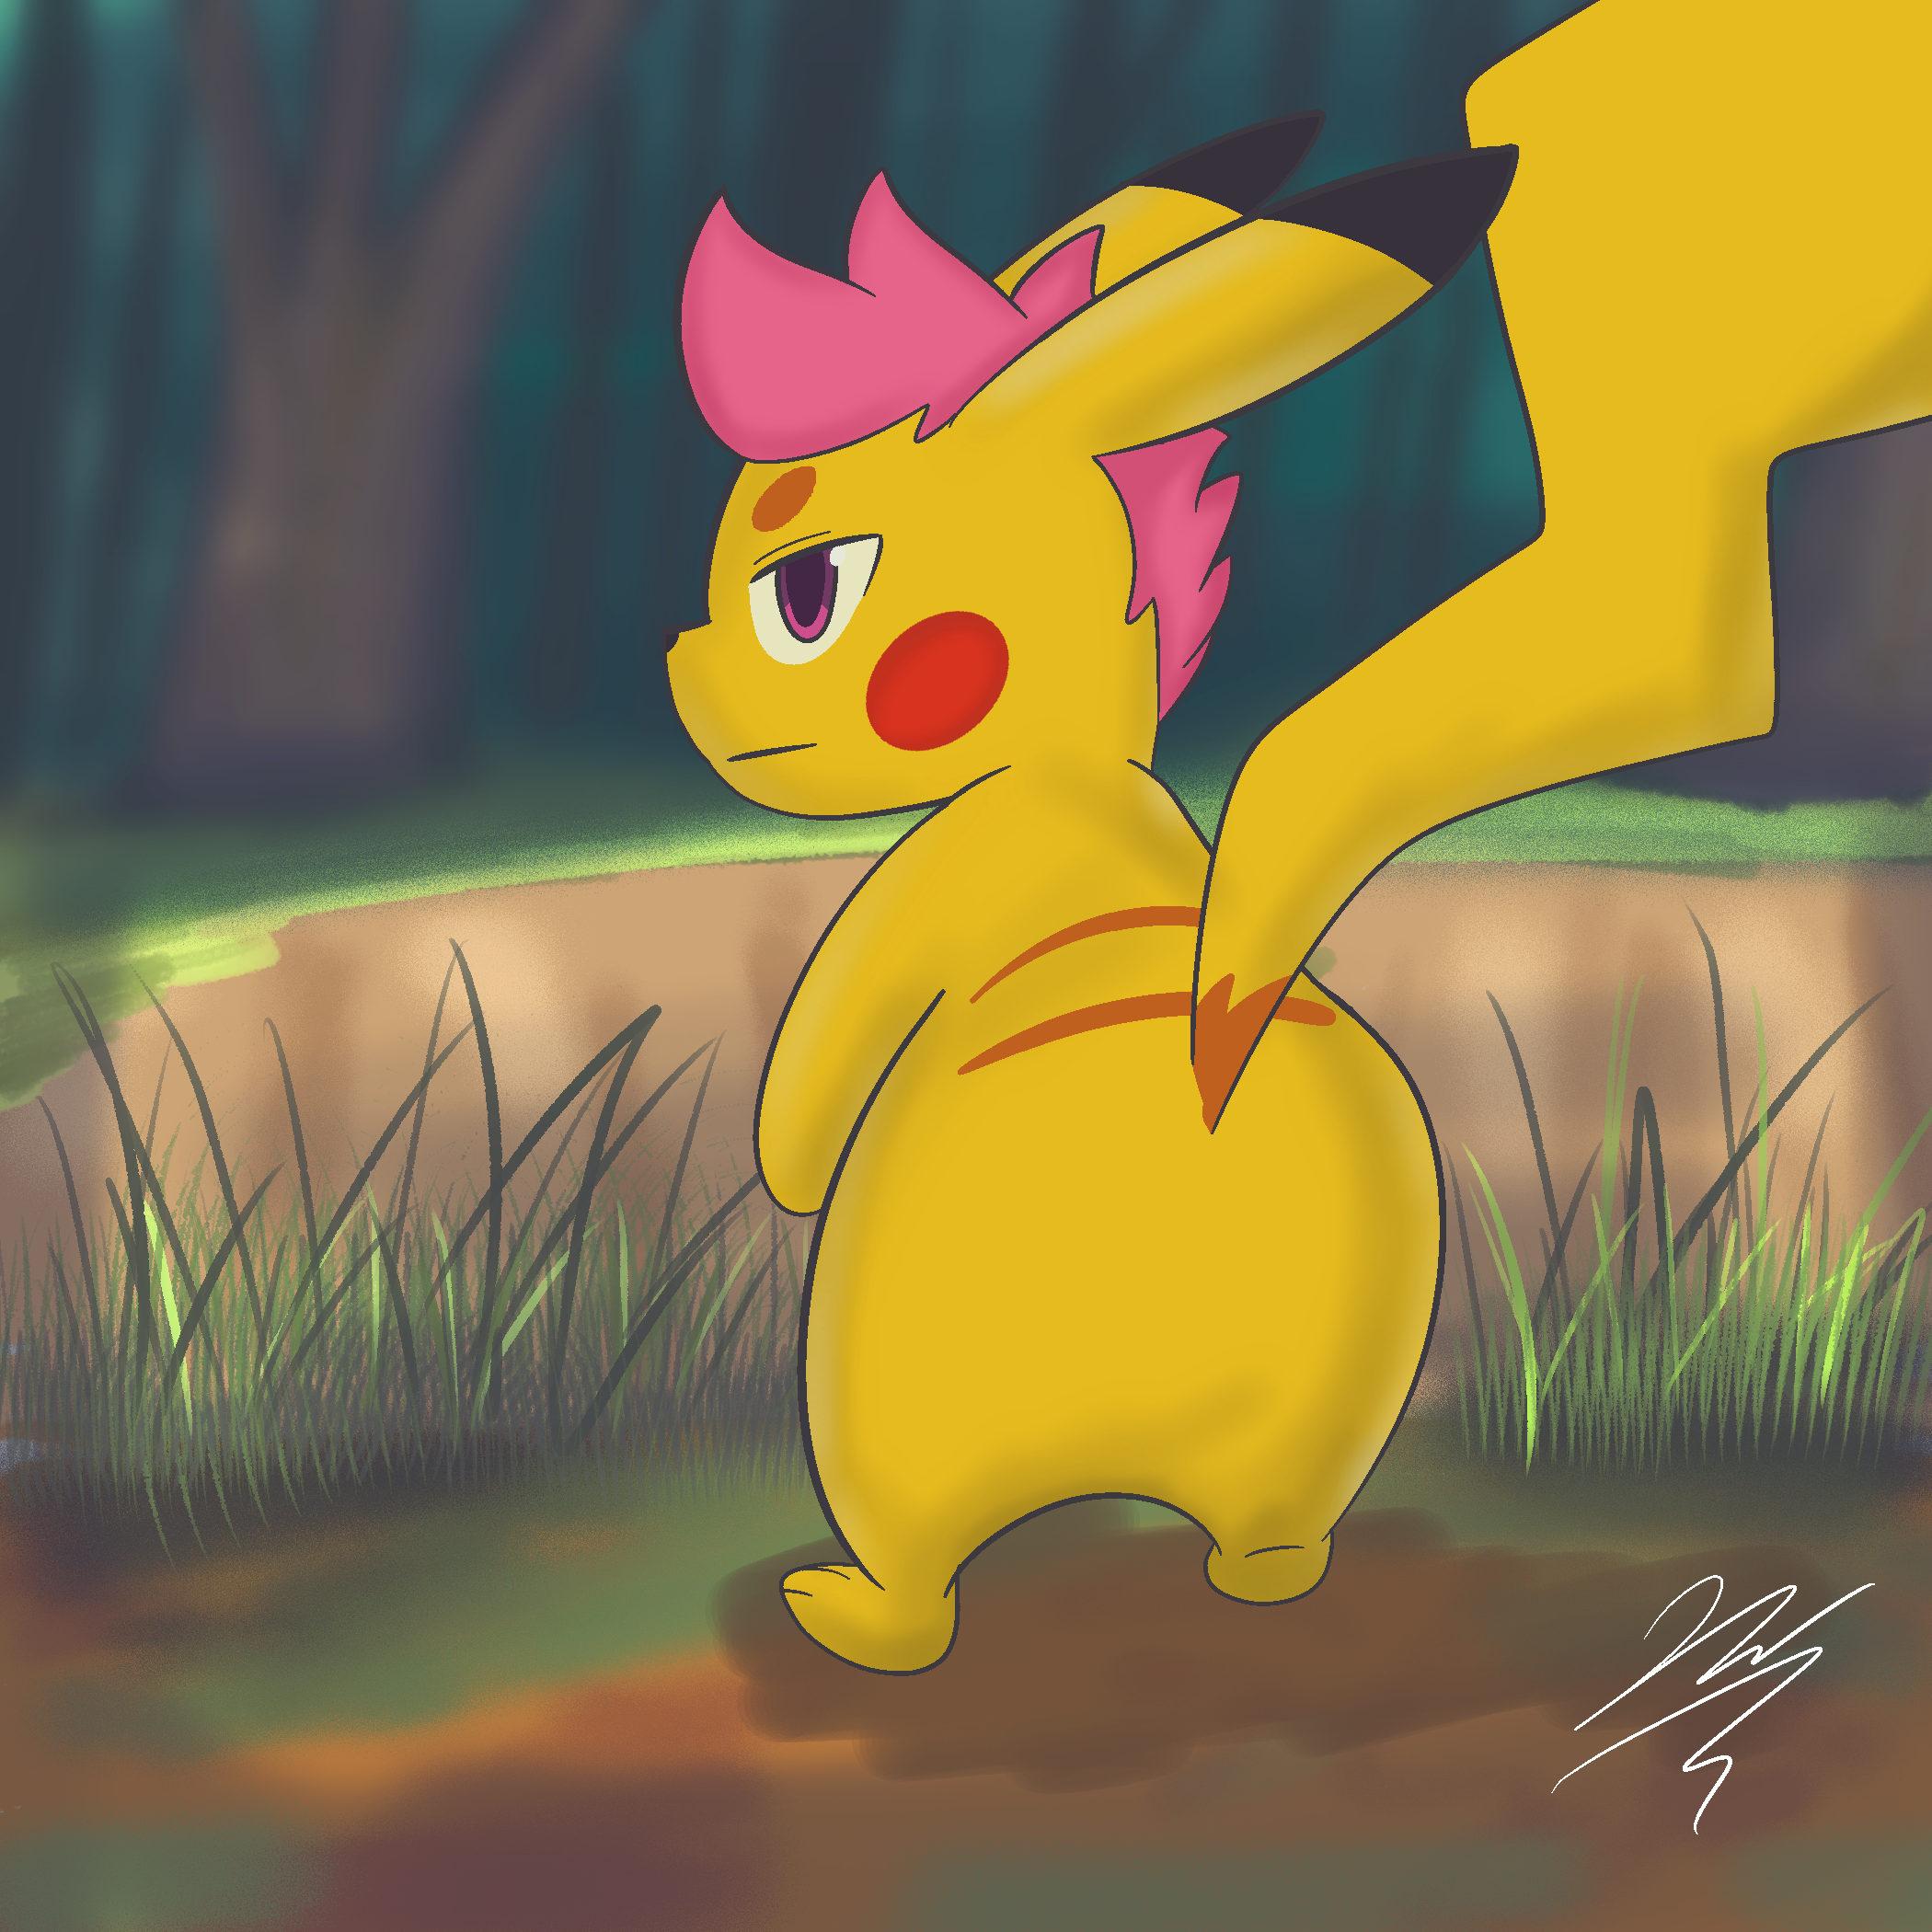 What what pika butt